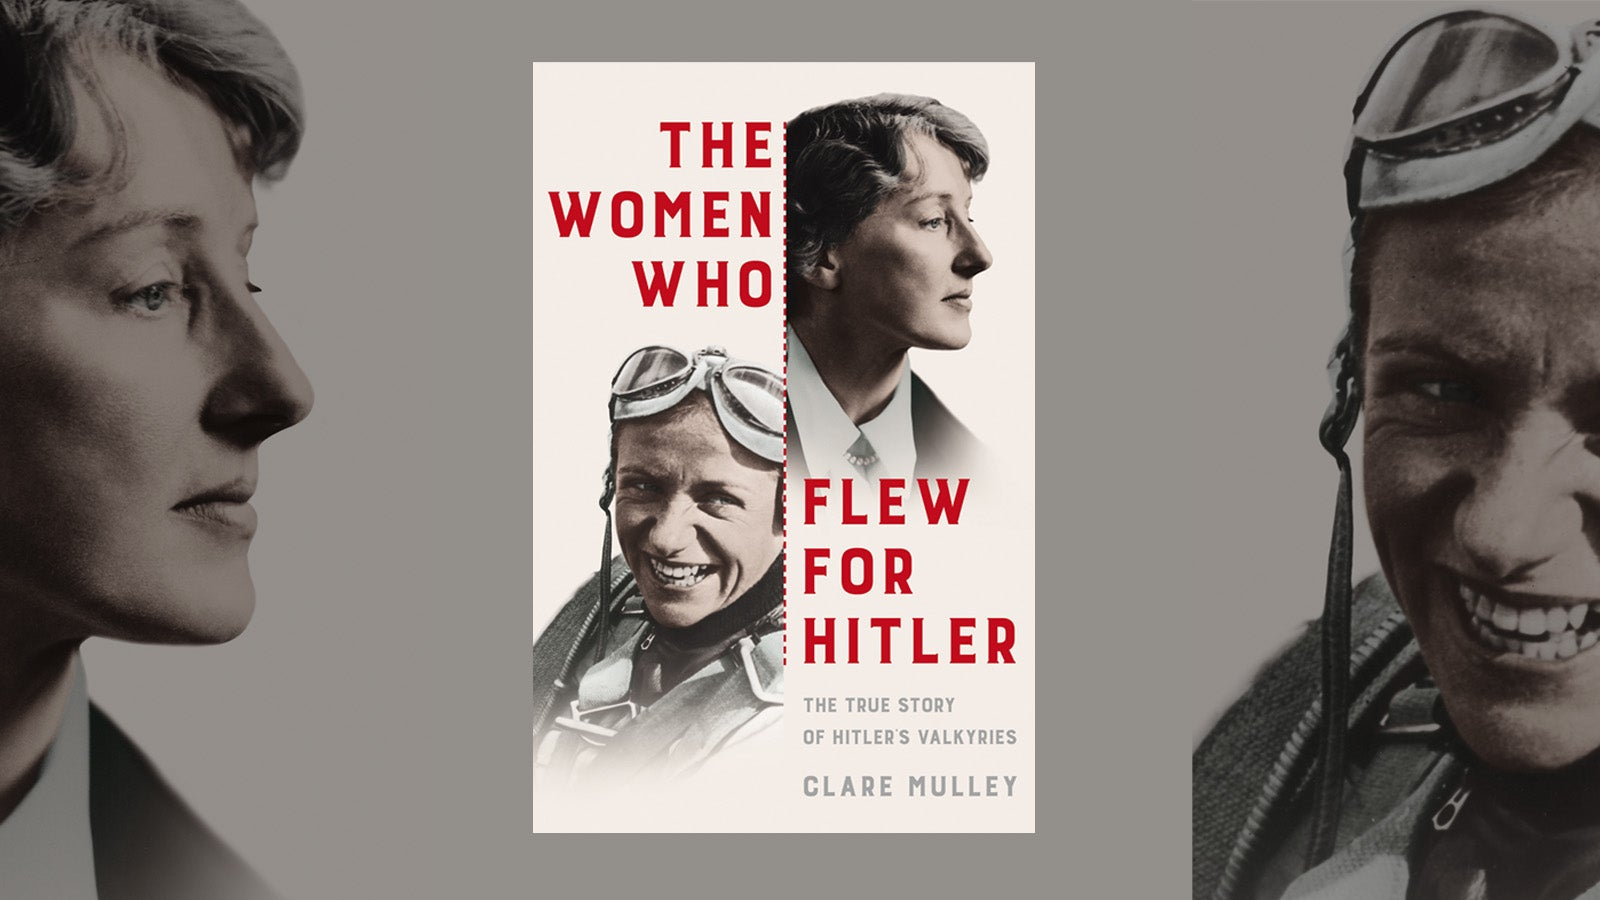 Jacket cover for the book, The Women who flew for Hitler by Clare Mulley, depicting two female aviators